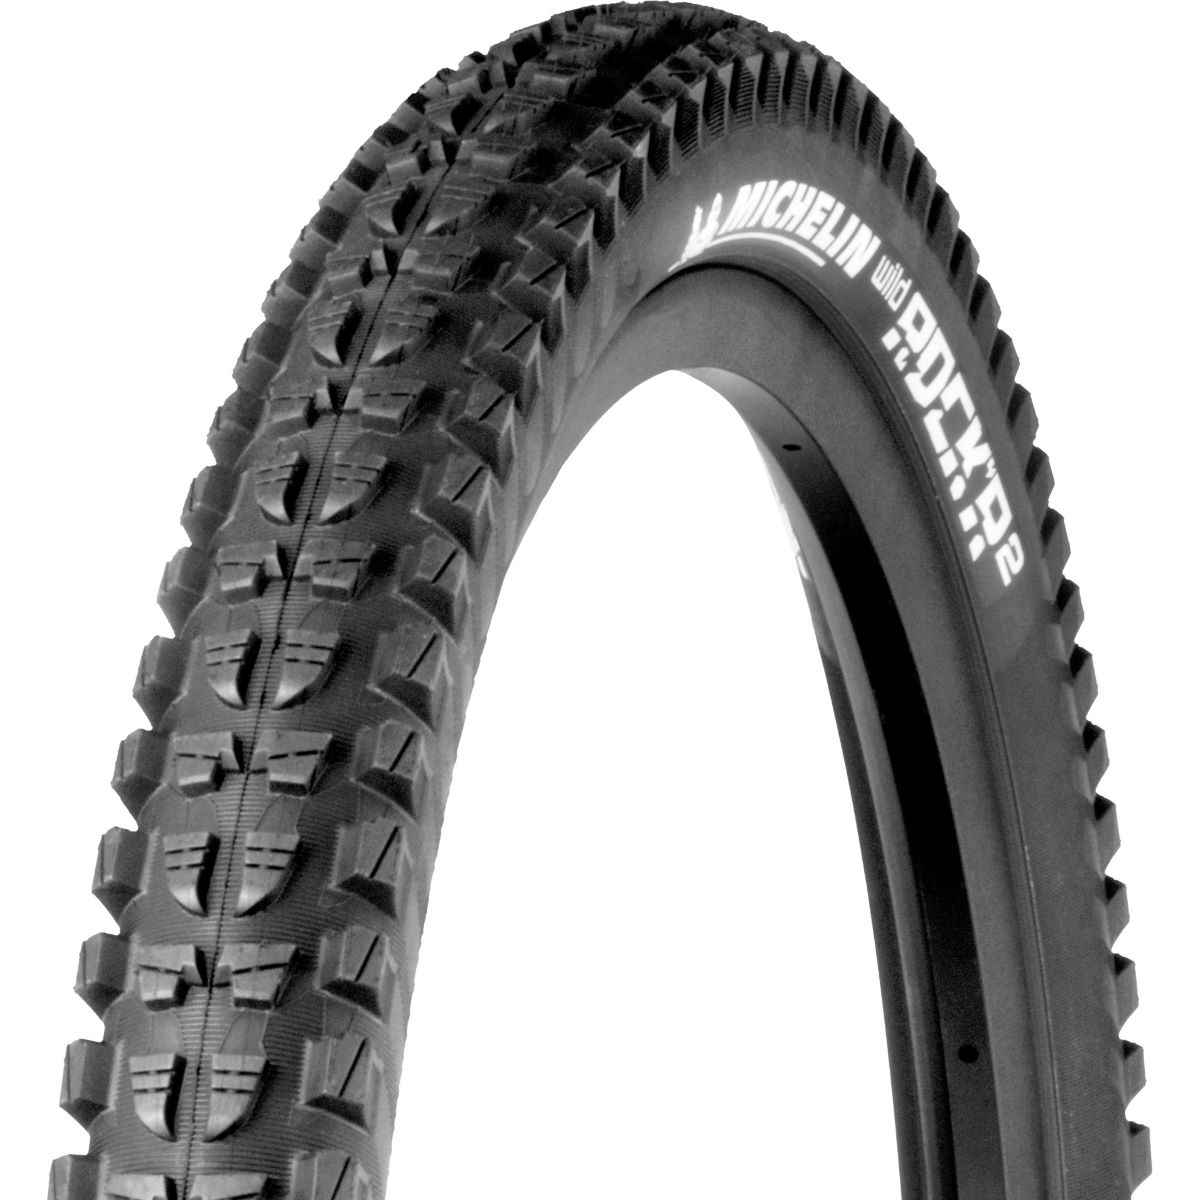 MICHELIN Michelin Rock R2 Enduro Magix TS TLR Front MTB Tyre   Tyres